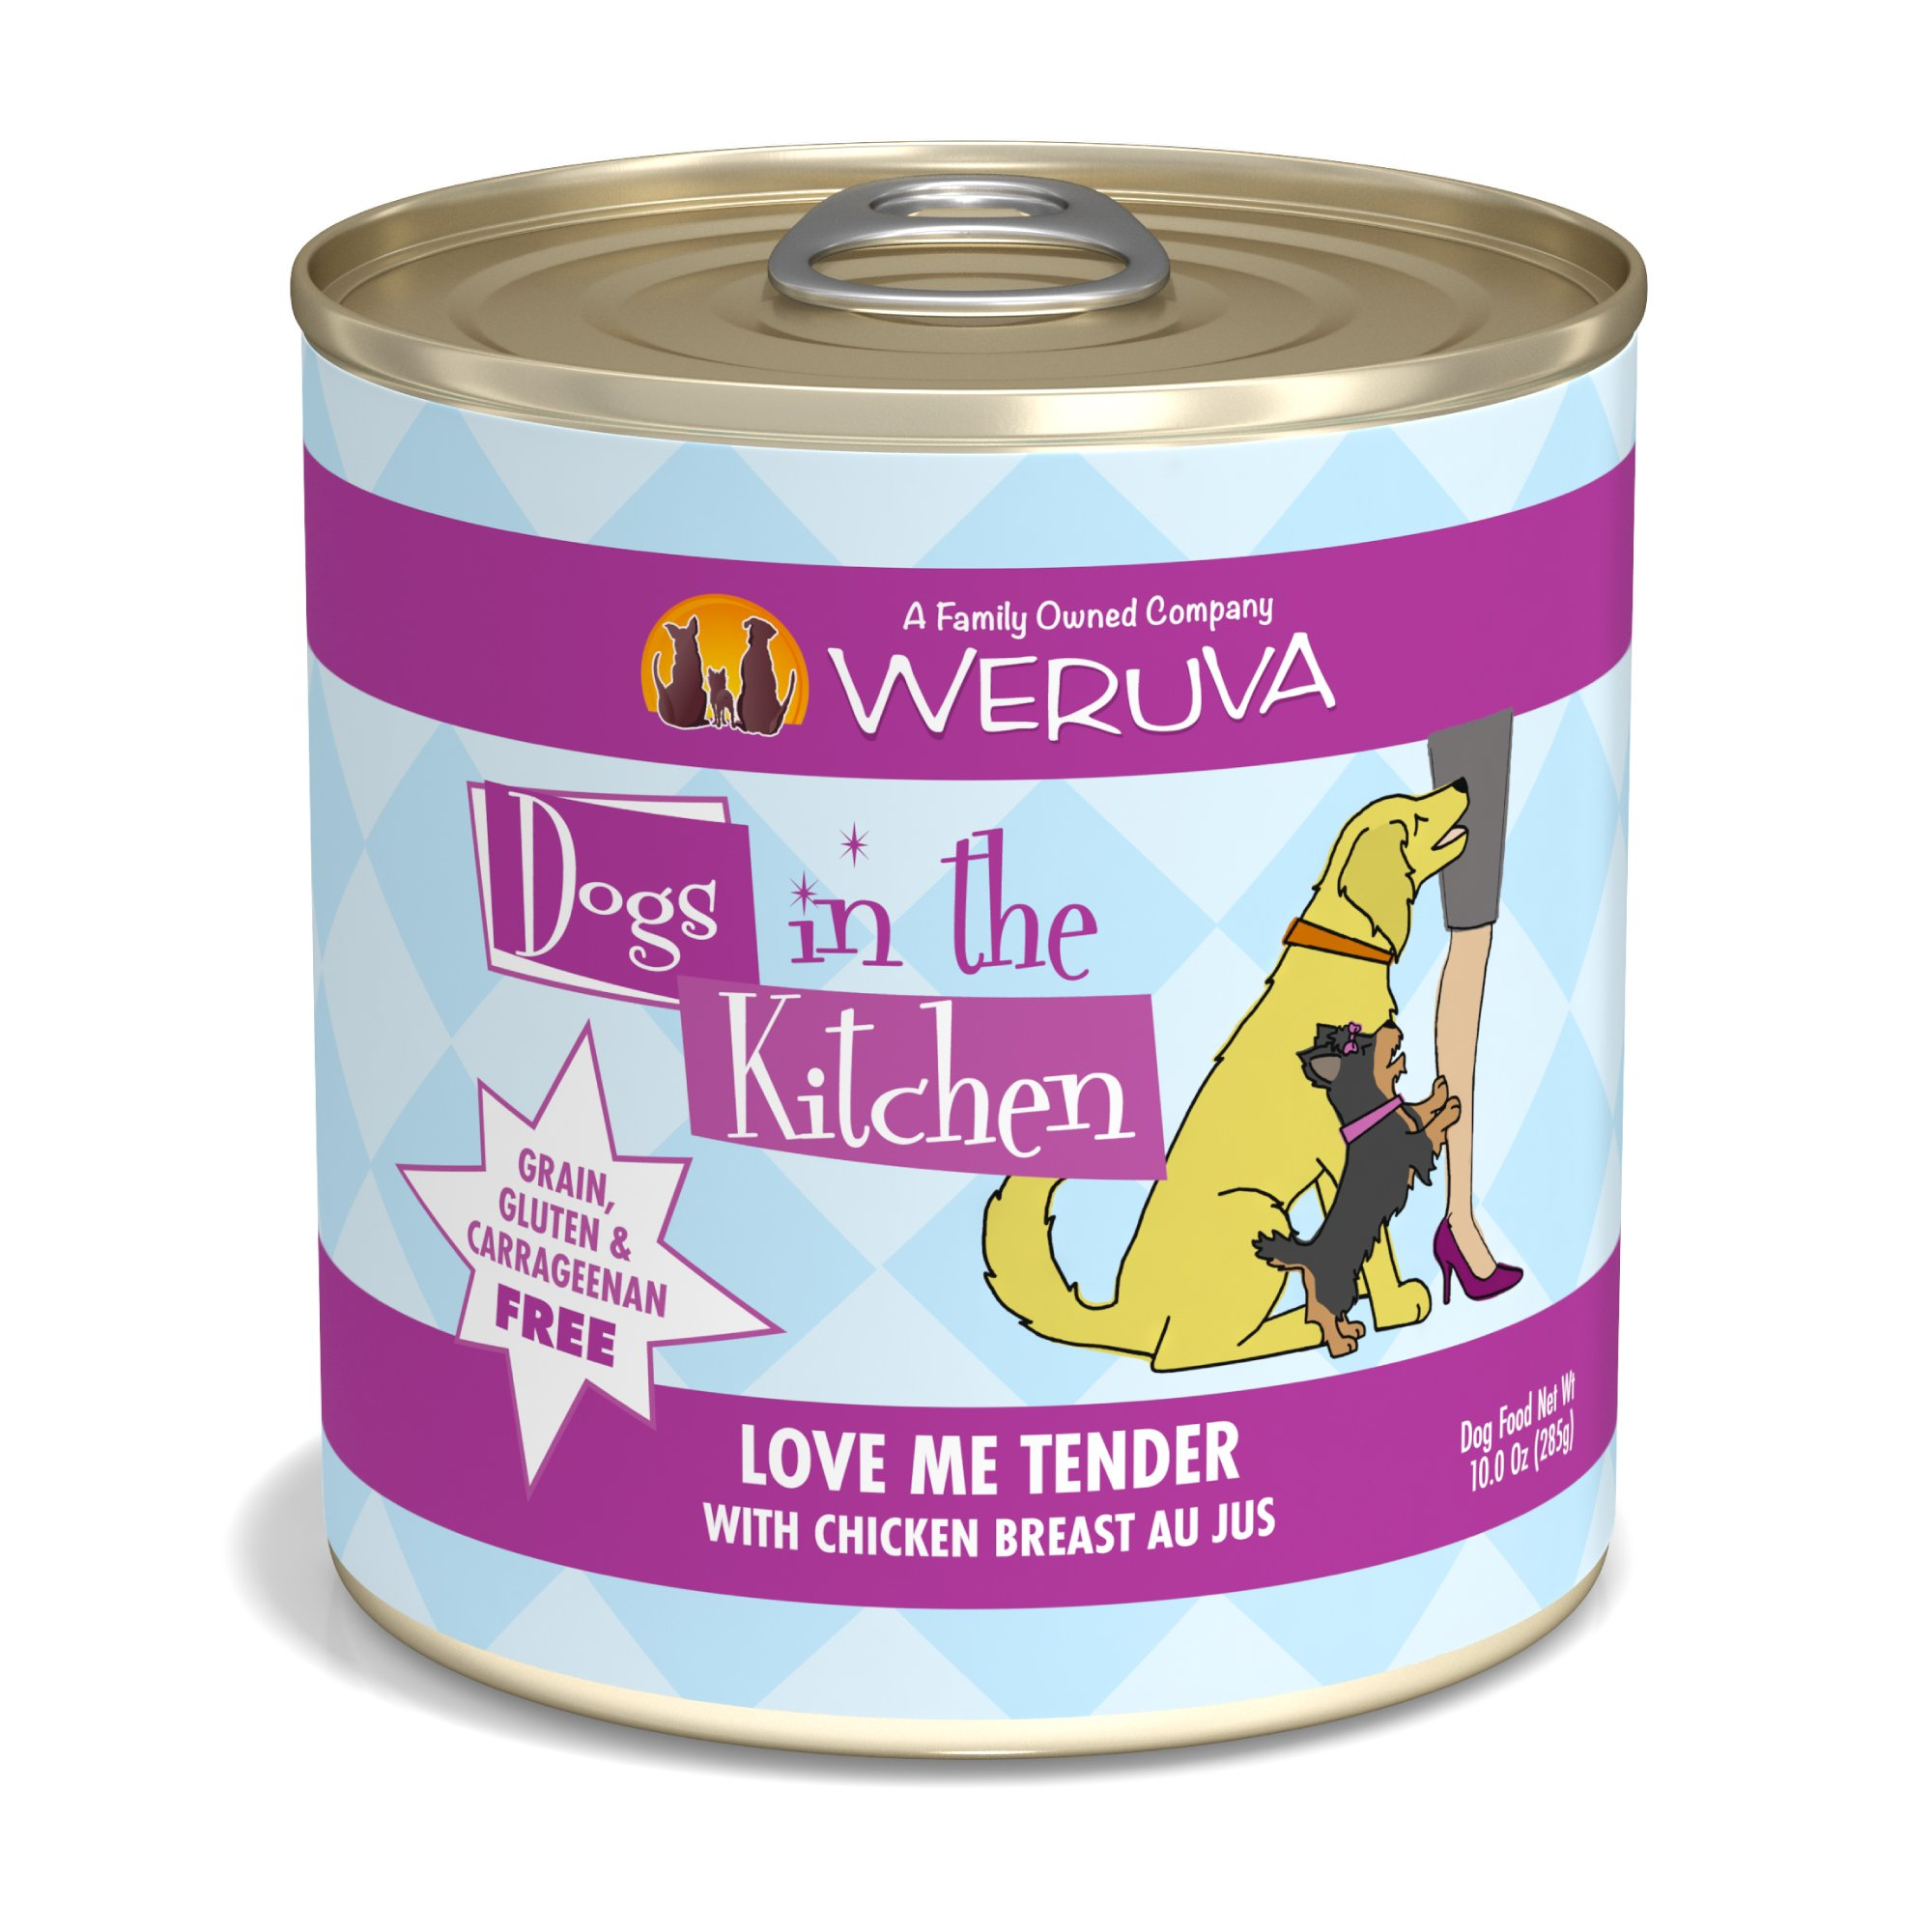 Dogs in the Kitchen Love Me Tender with Chicken Breast Au Jus Wet Dog Food, 10oz., Case of 12, 12 X 10 OZ